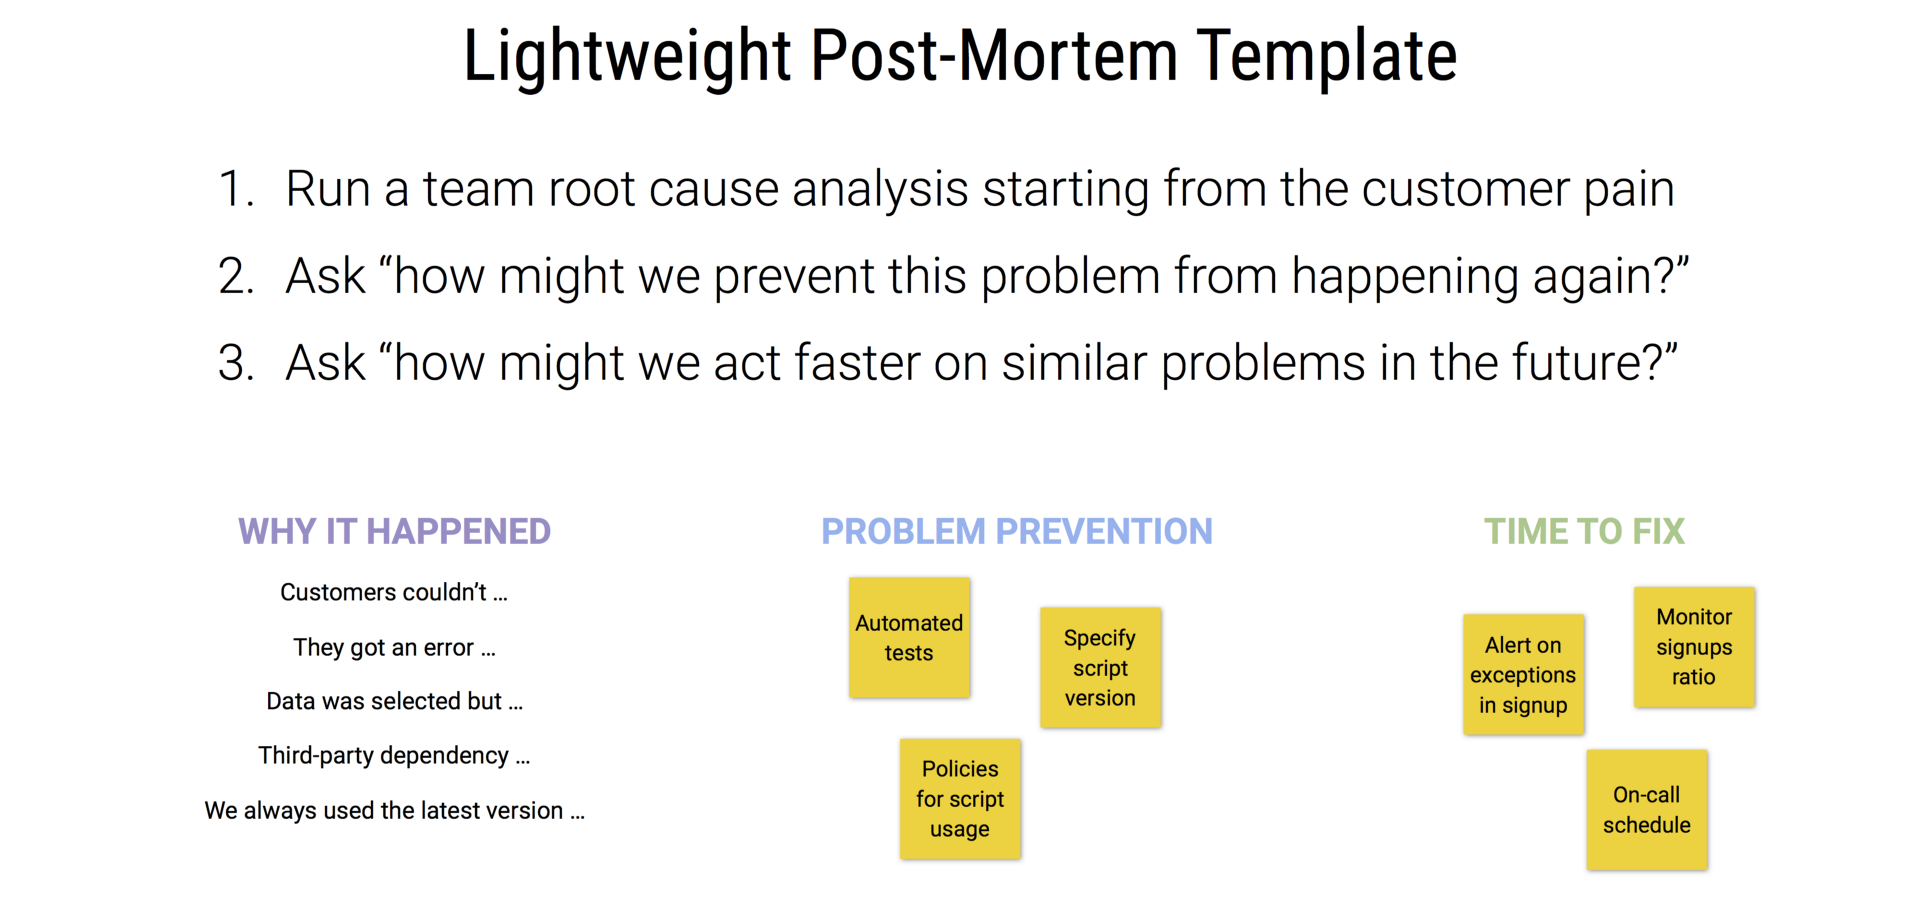 An example and template for conducting lightweight post mortem an example and template for conducting lightweight post mortem examinations friedricerecipe Choice Image